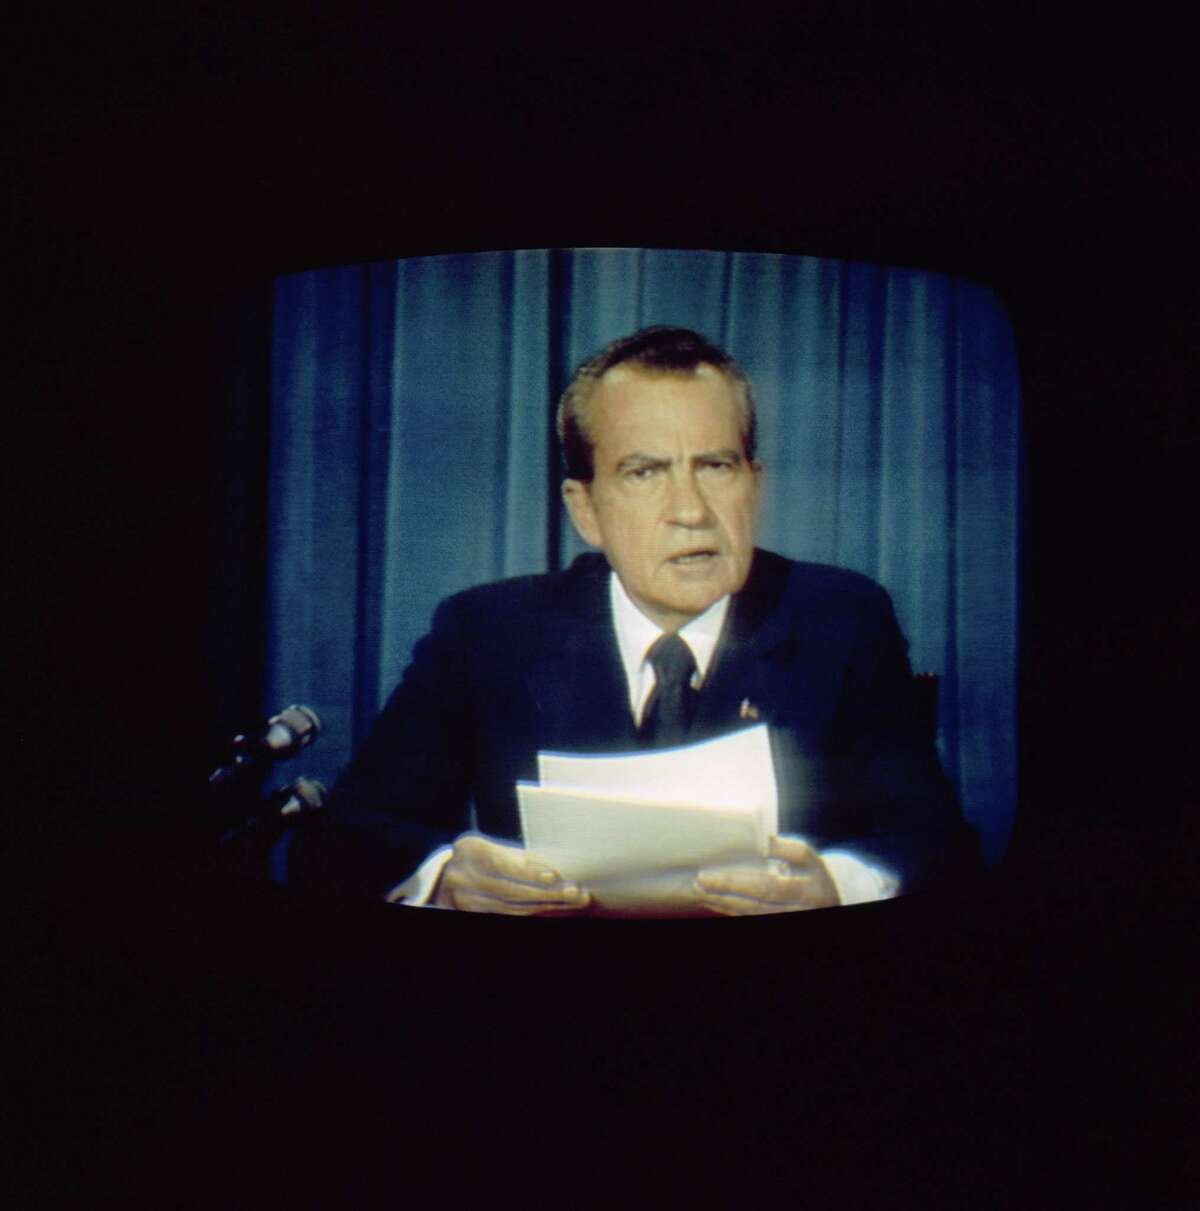 President Richard Nixon gives his resignation speech from the Oval Office at the White House in Washington D.C., on Aug. 8, 1974